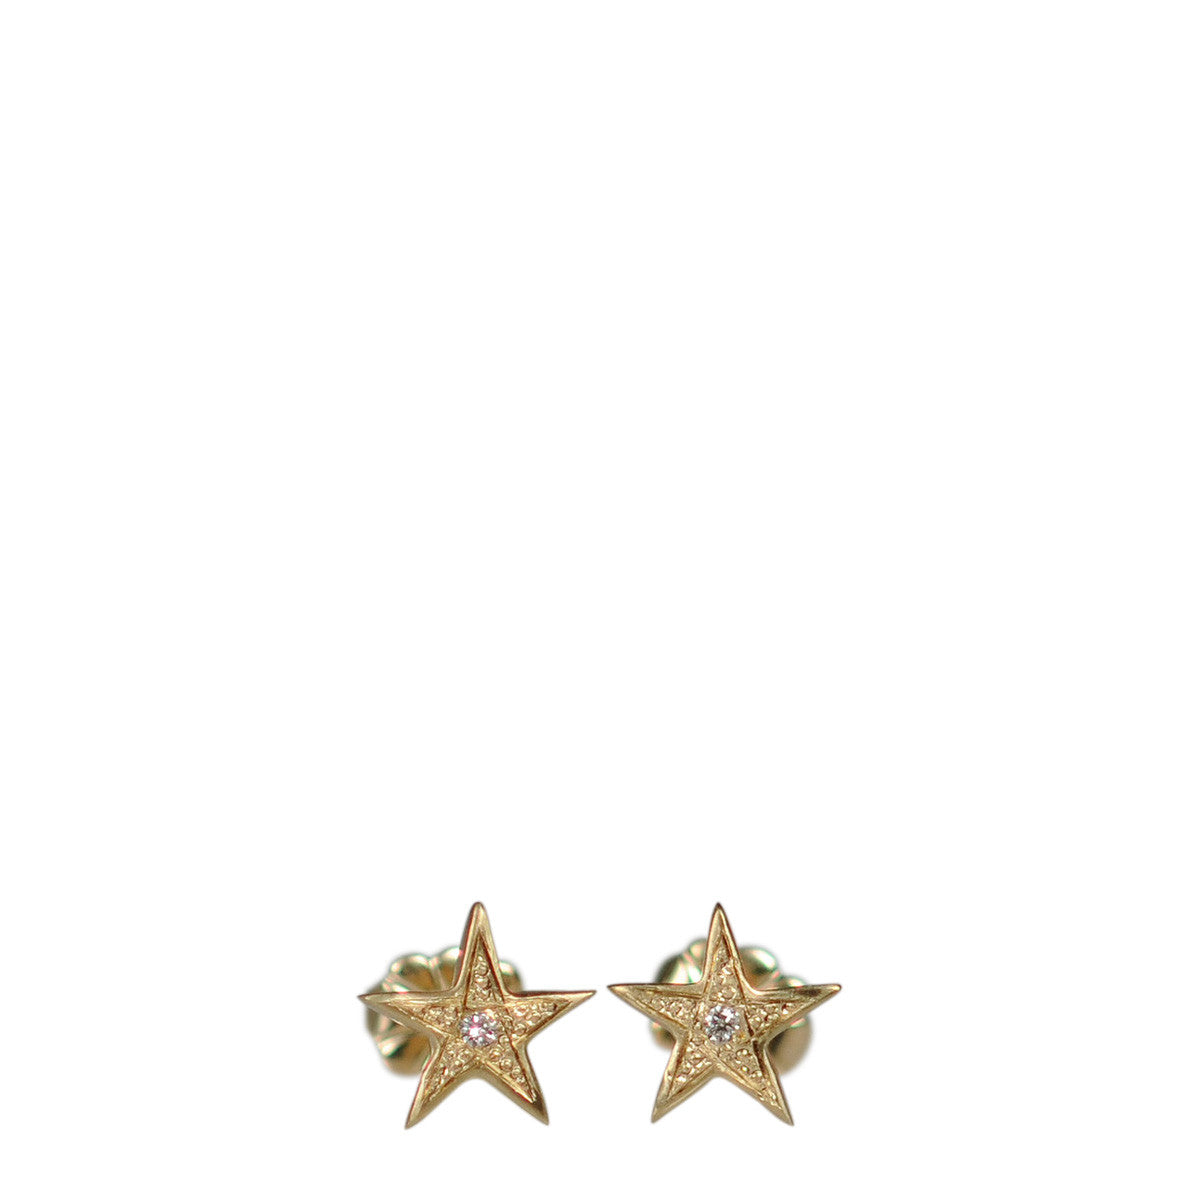 10K Gold Tiny Bombay Star Stud Earrings with Diamonds